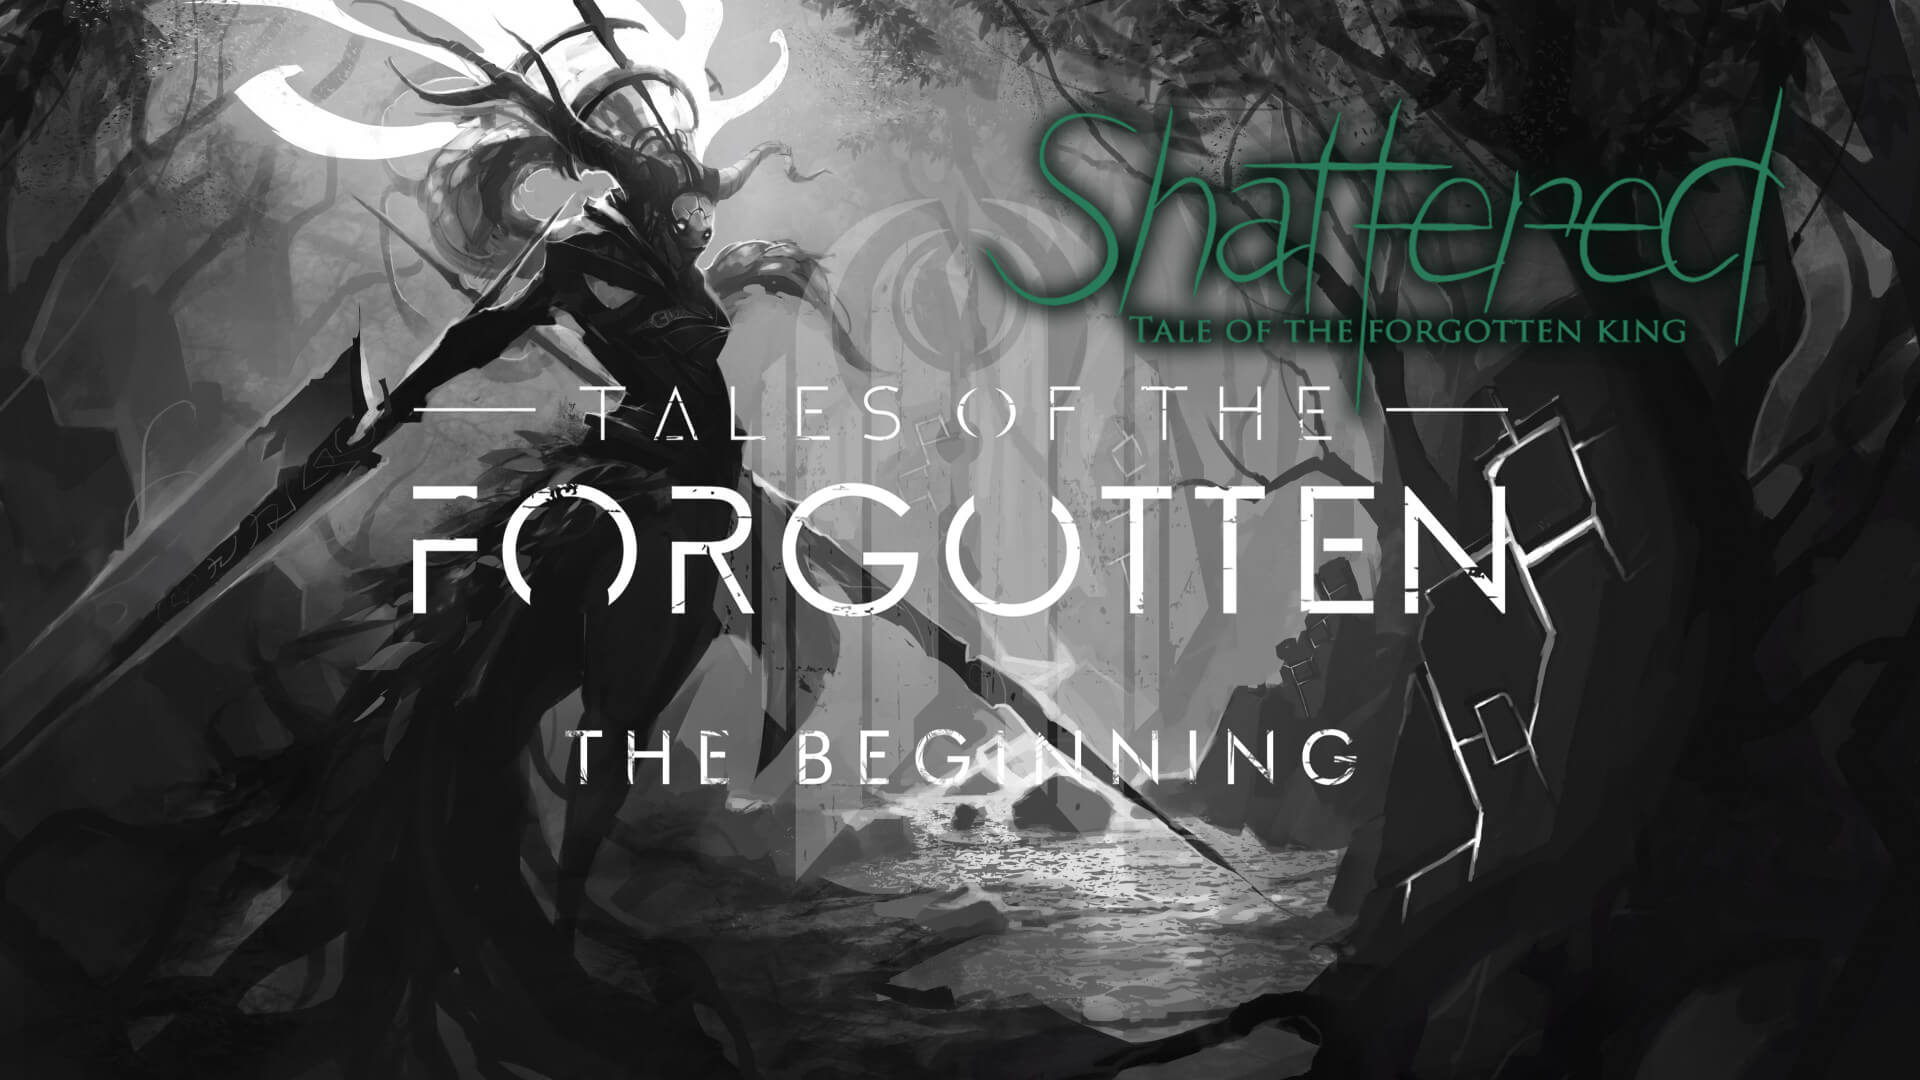 Shattered: Tale of the Forgotten King early access